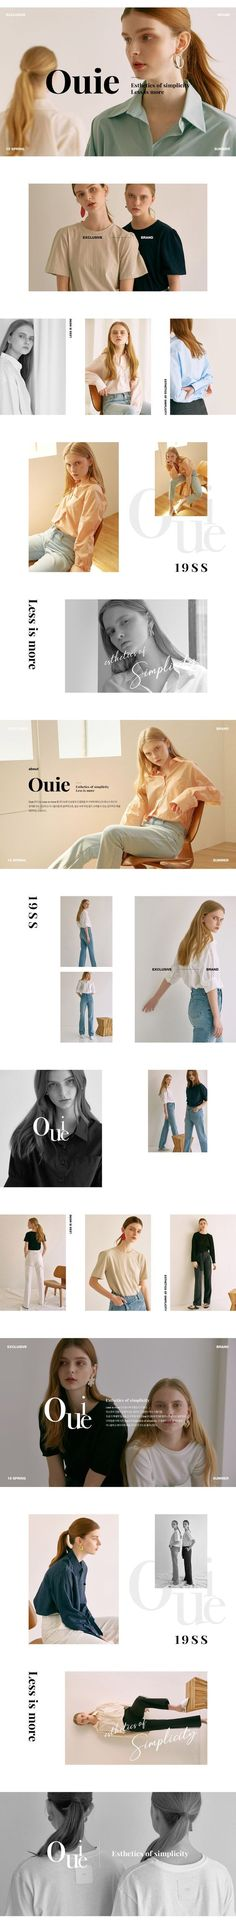 inspiracion grafica Lookbook Layout, Lookbook Design, Web Layout, Layout Design, Shop Banner Design, Newsletter Layout, Email Design Inspiration, Fashion Banner, Fashion Graphic Design